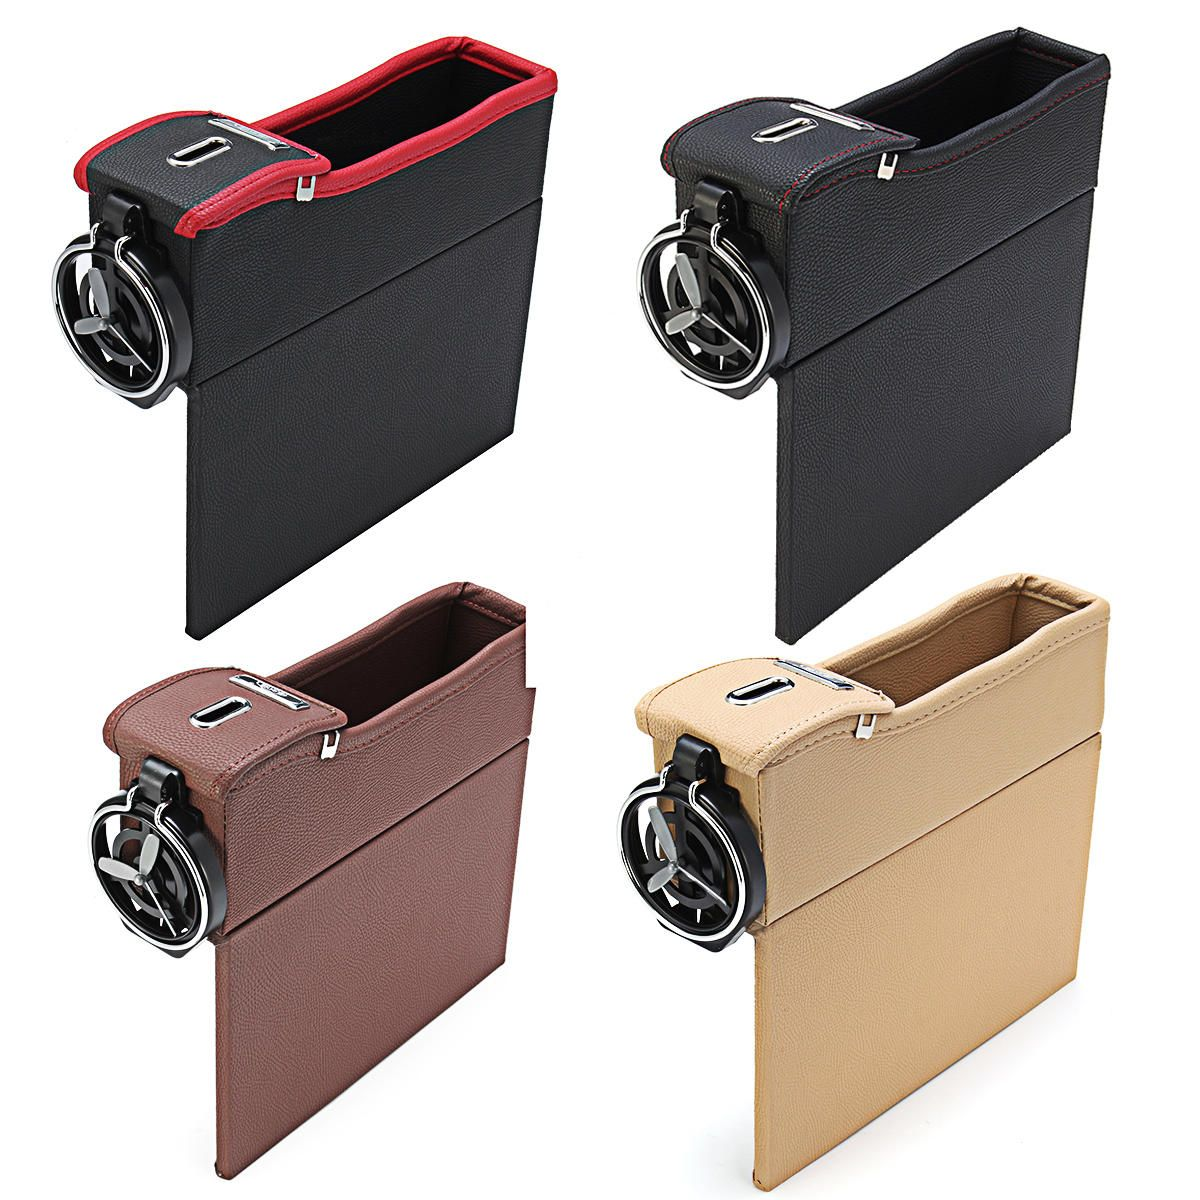 Leather Car Storage Bag Box Money Pot Beverage Holder Car